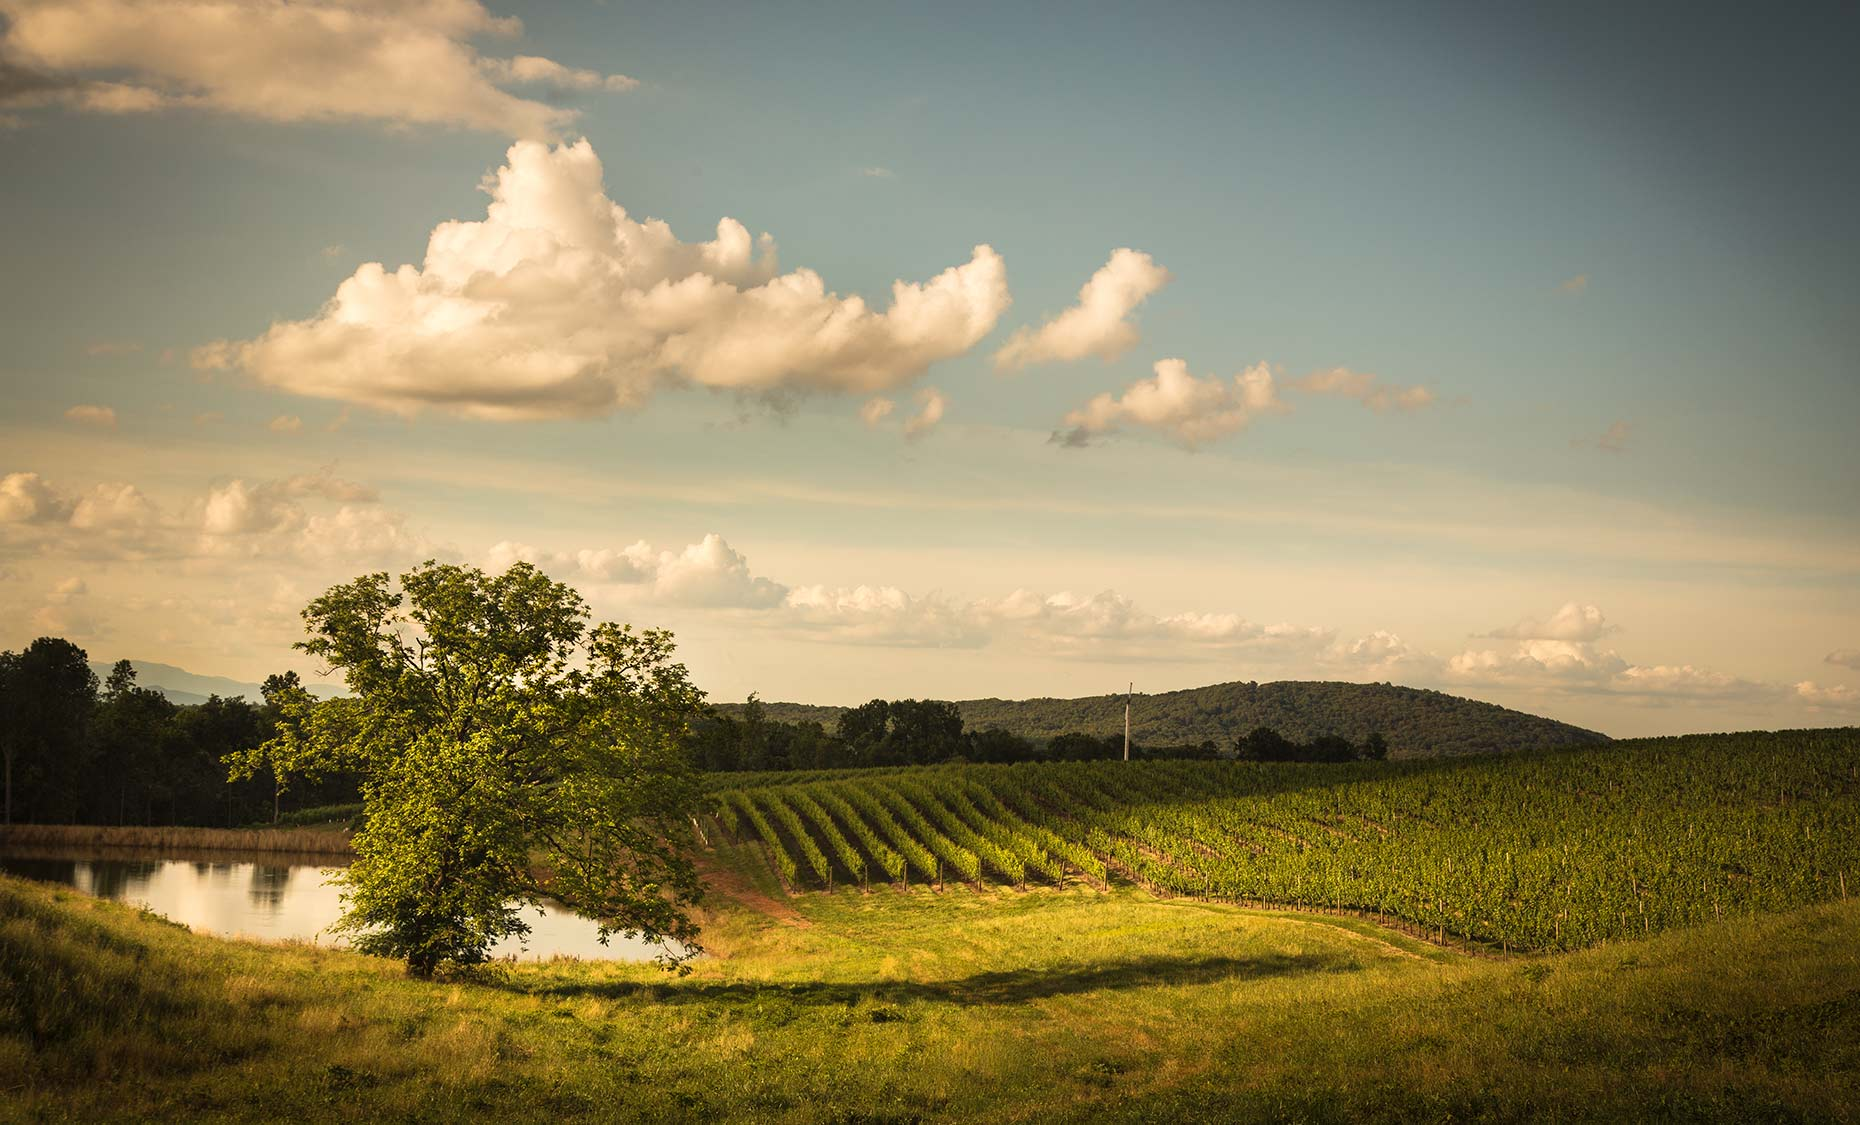 vineyard, pond, wine, vines, hills